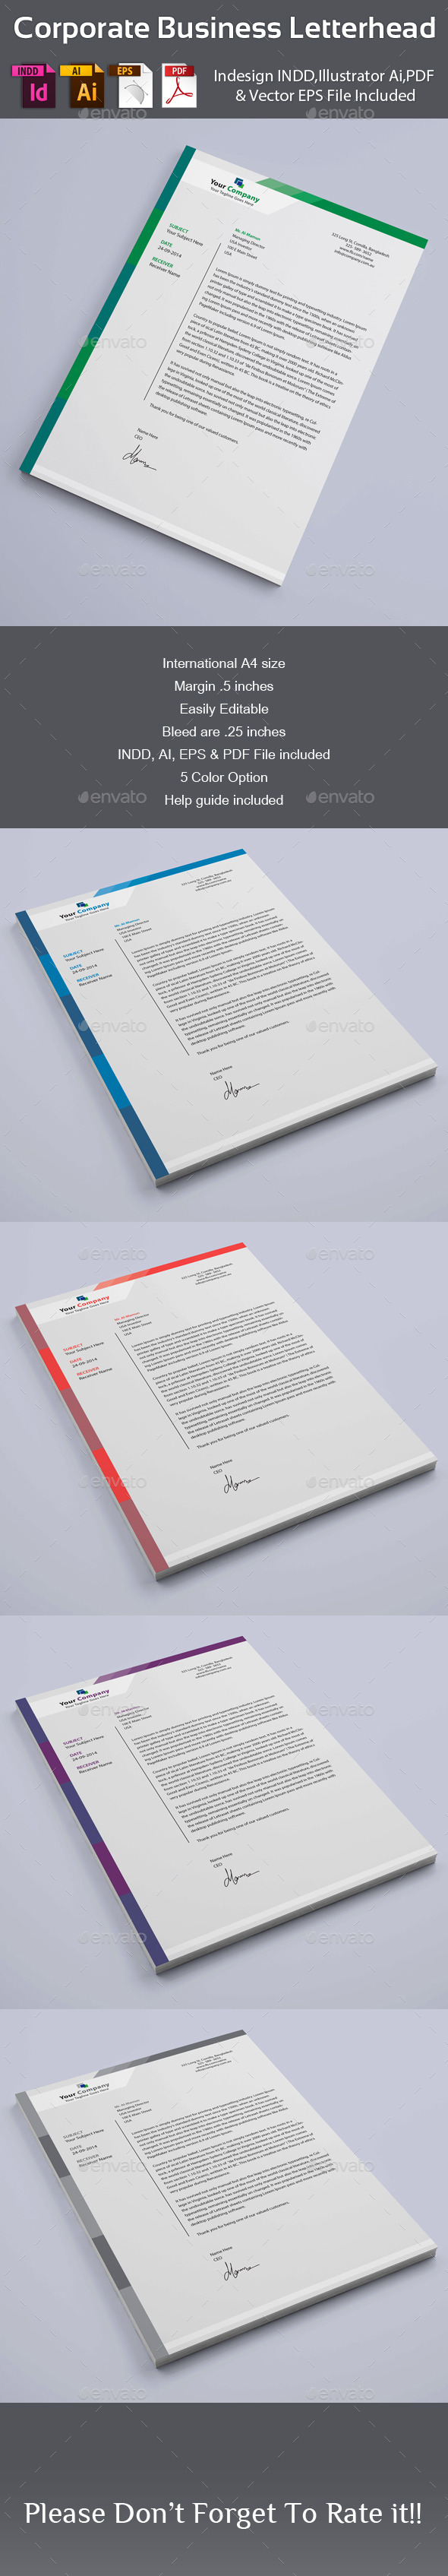 GraphicRiver Corporate Business Letterhead 8899397